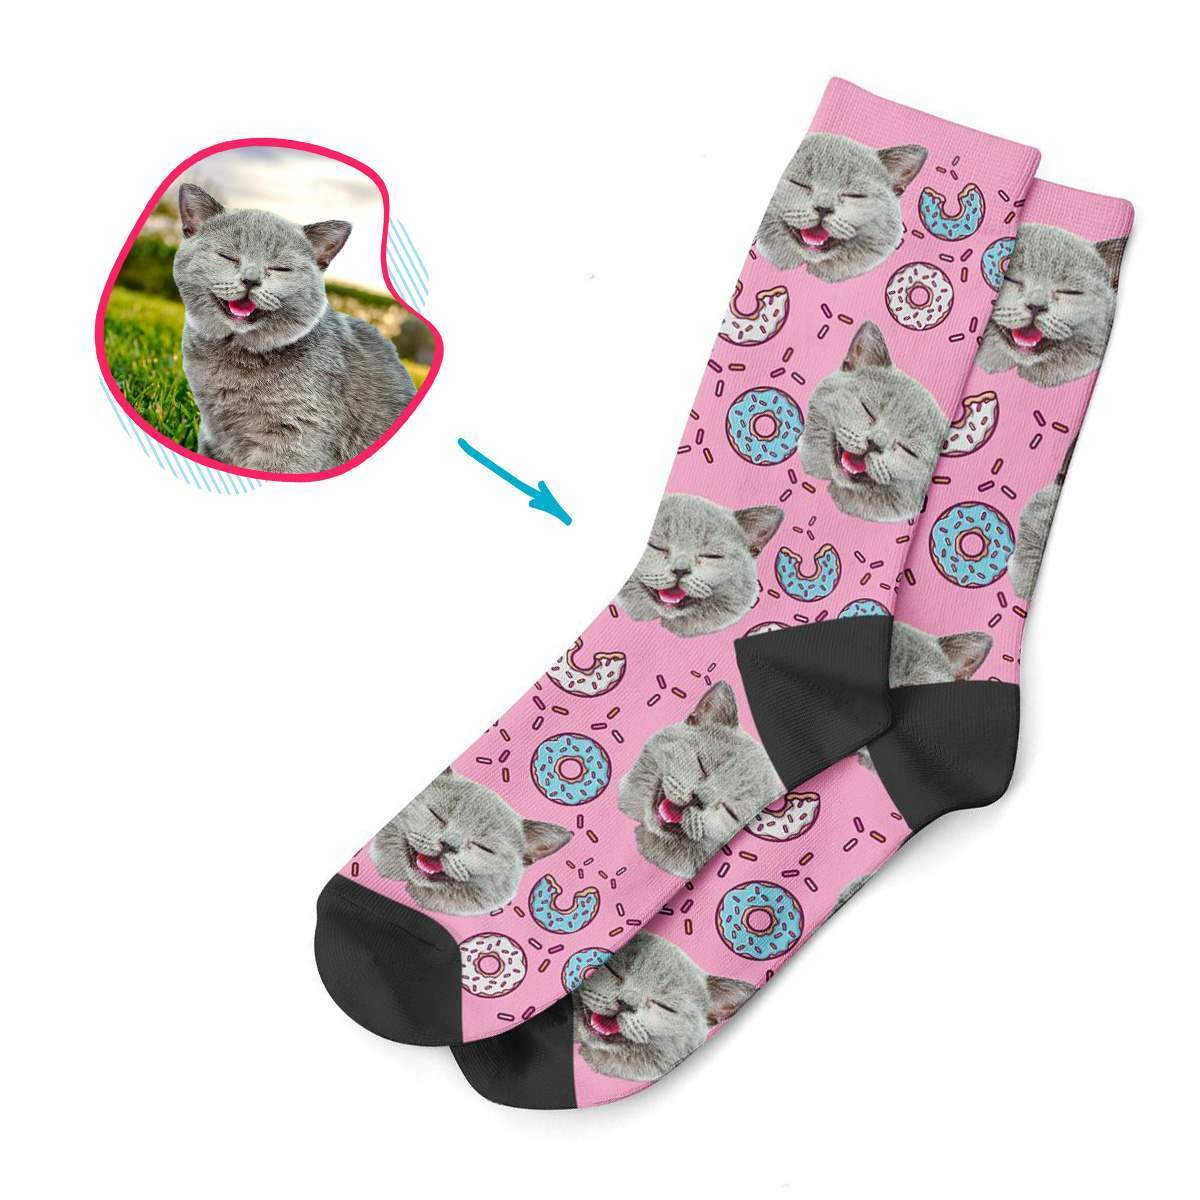 pink Donuts socks personalized with photo of face printed on them